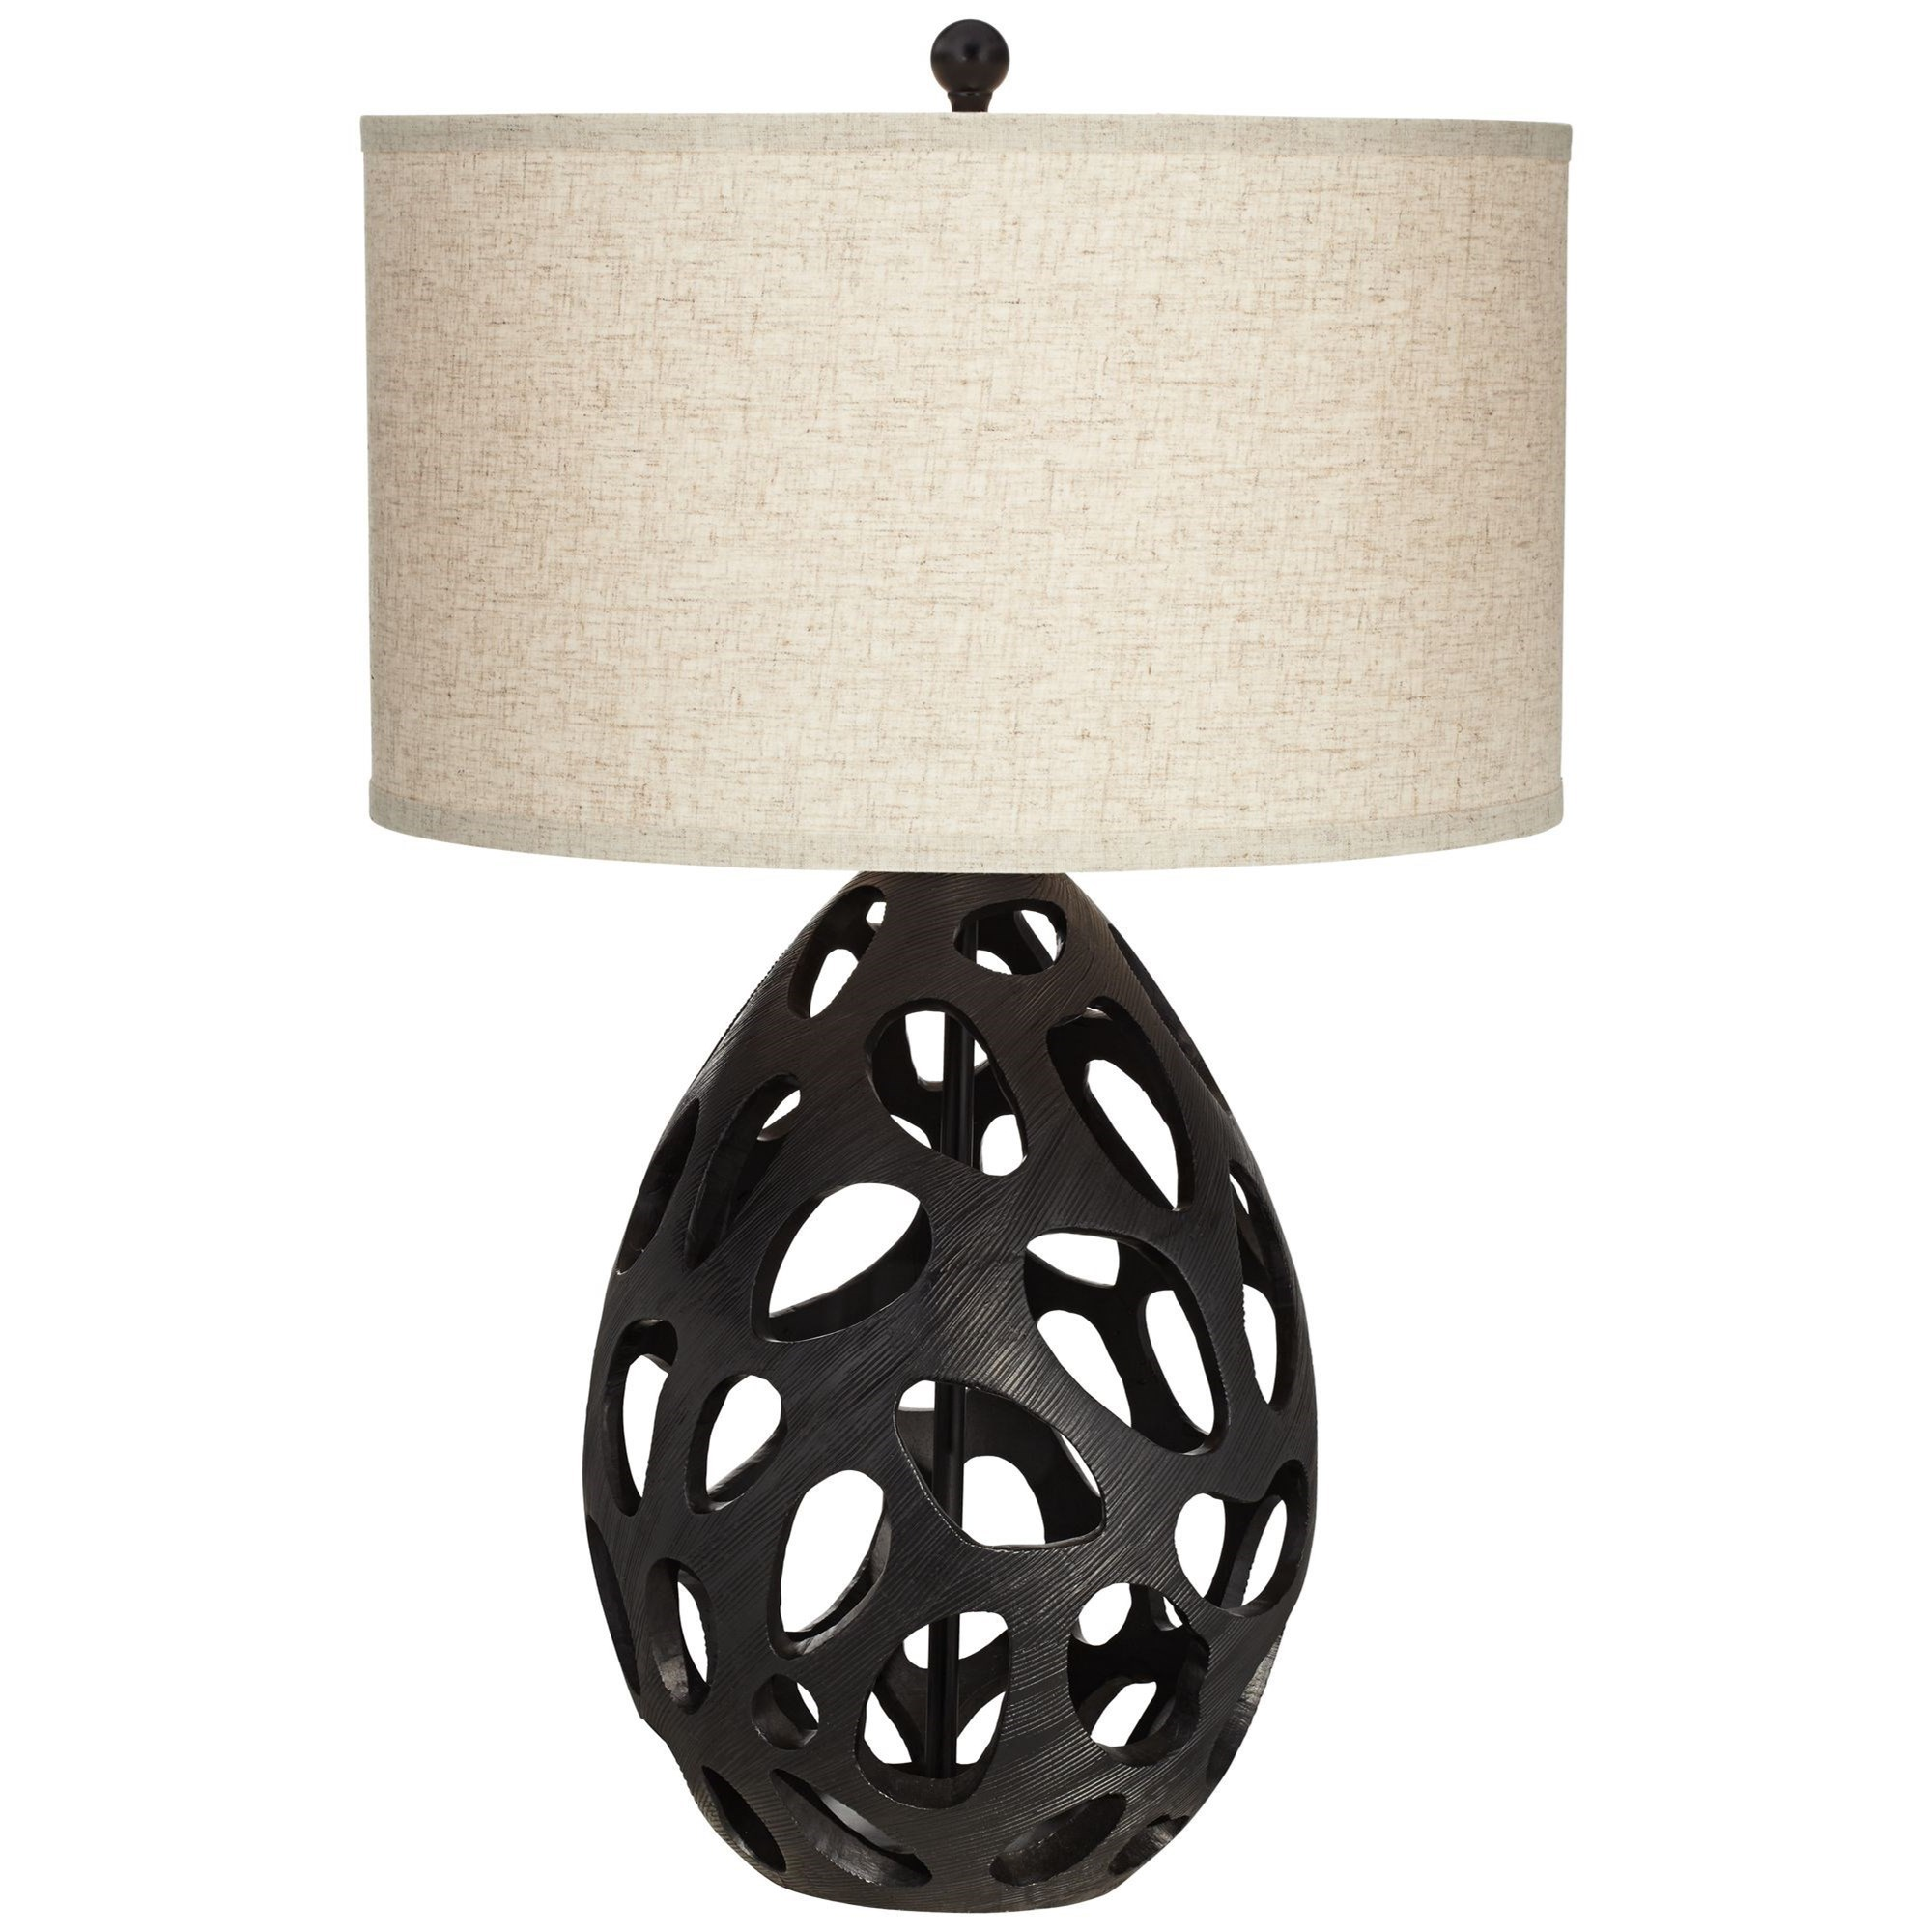 Table Lamps Luna Table Lamp at Bennett's Furniture and Mattresses